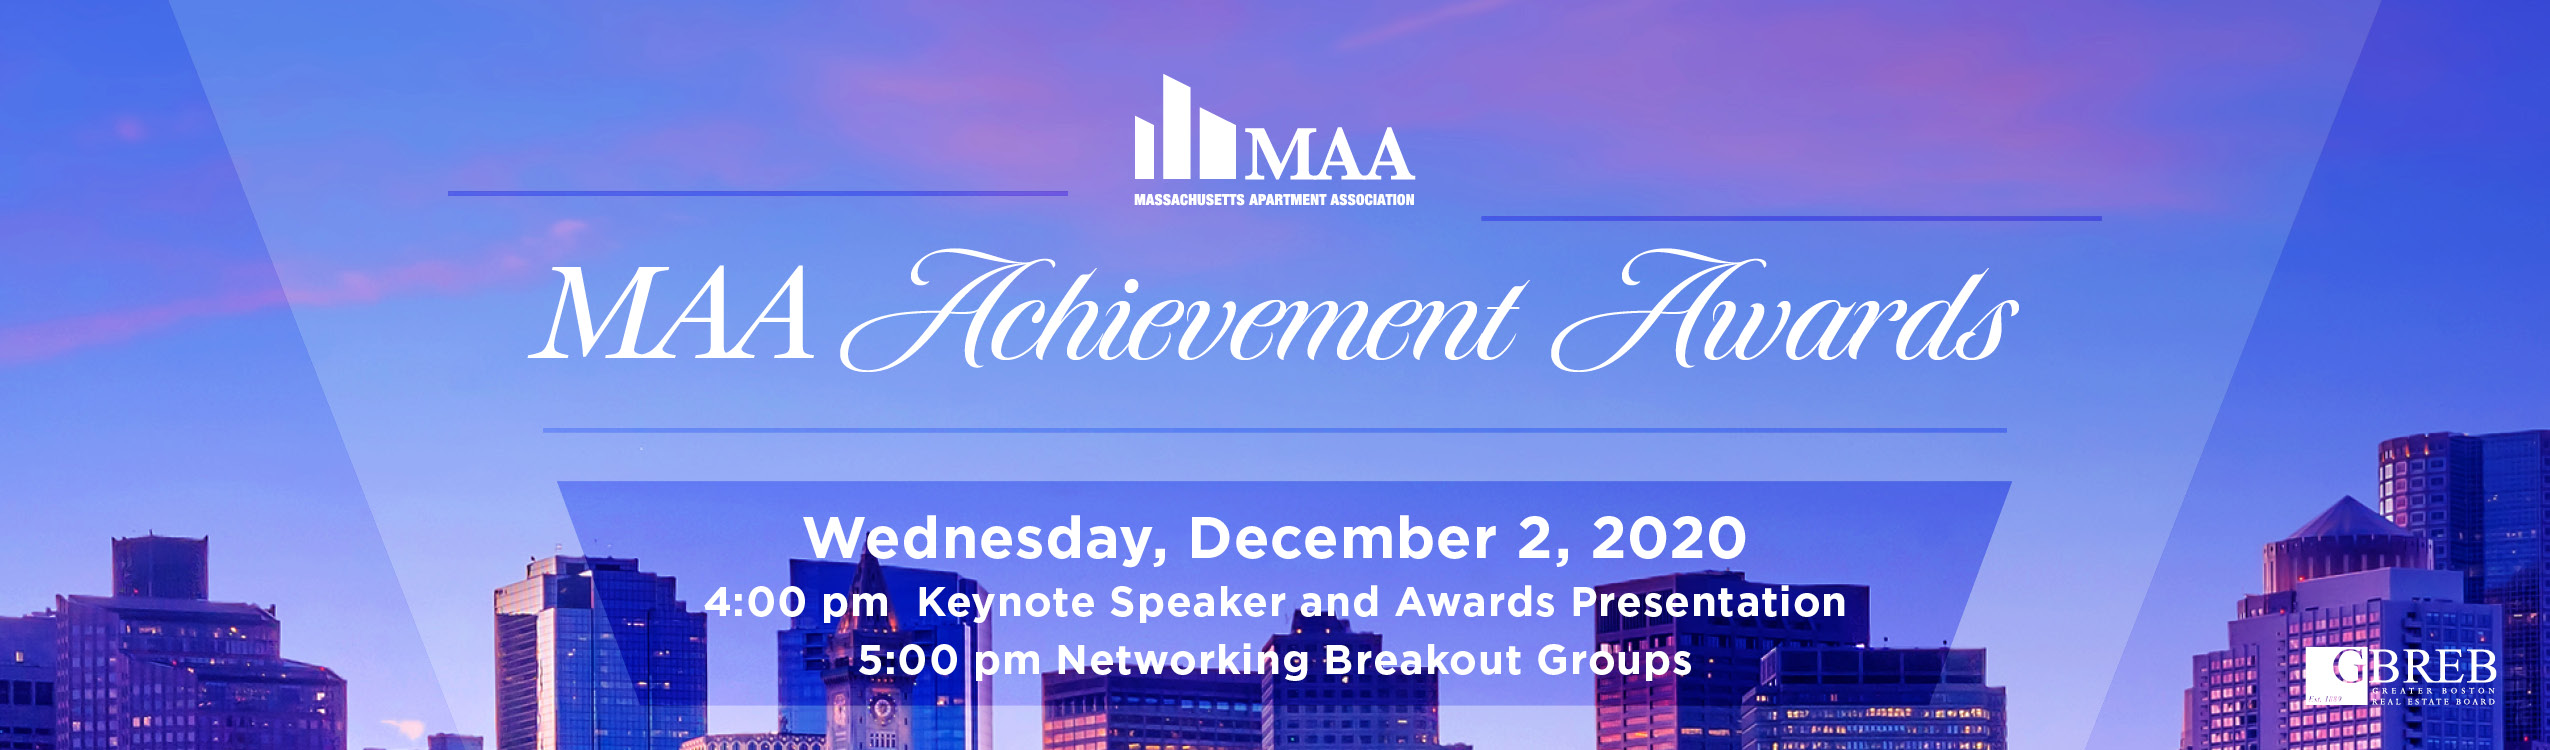 MAA Achievement Awards